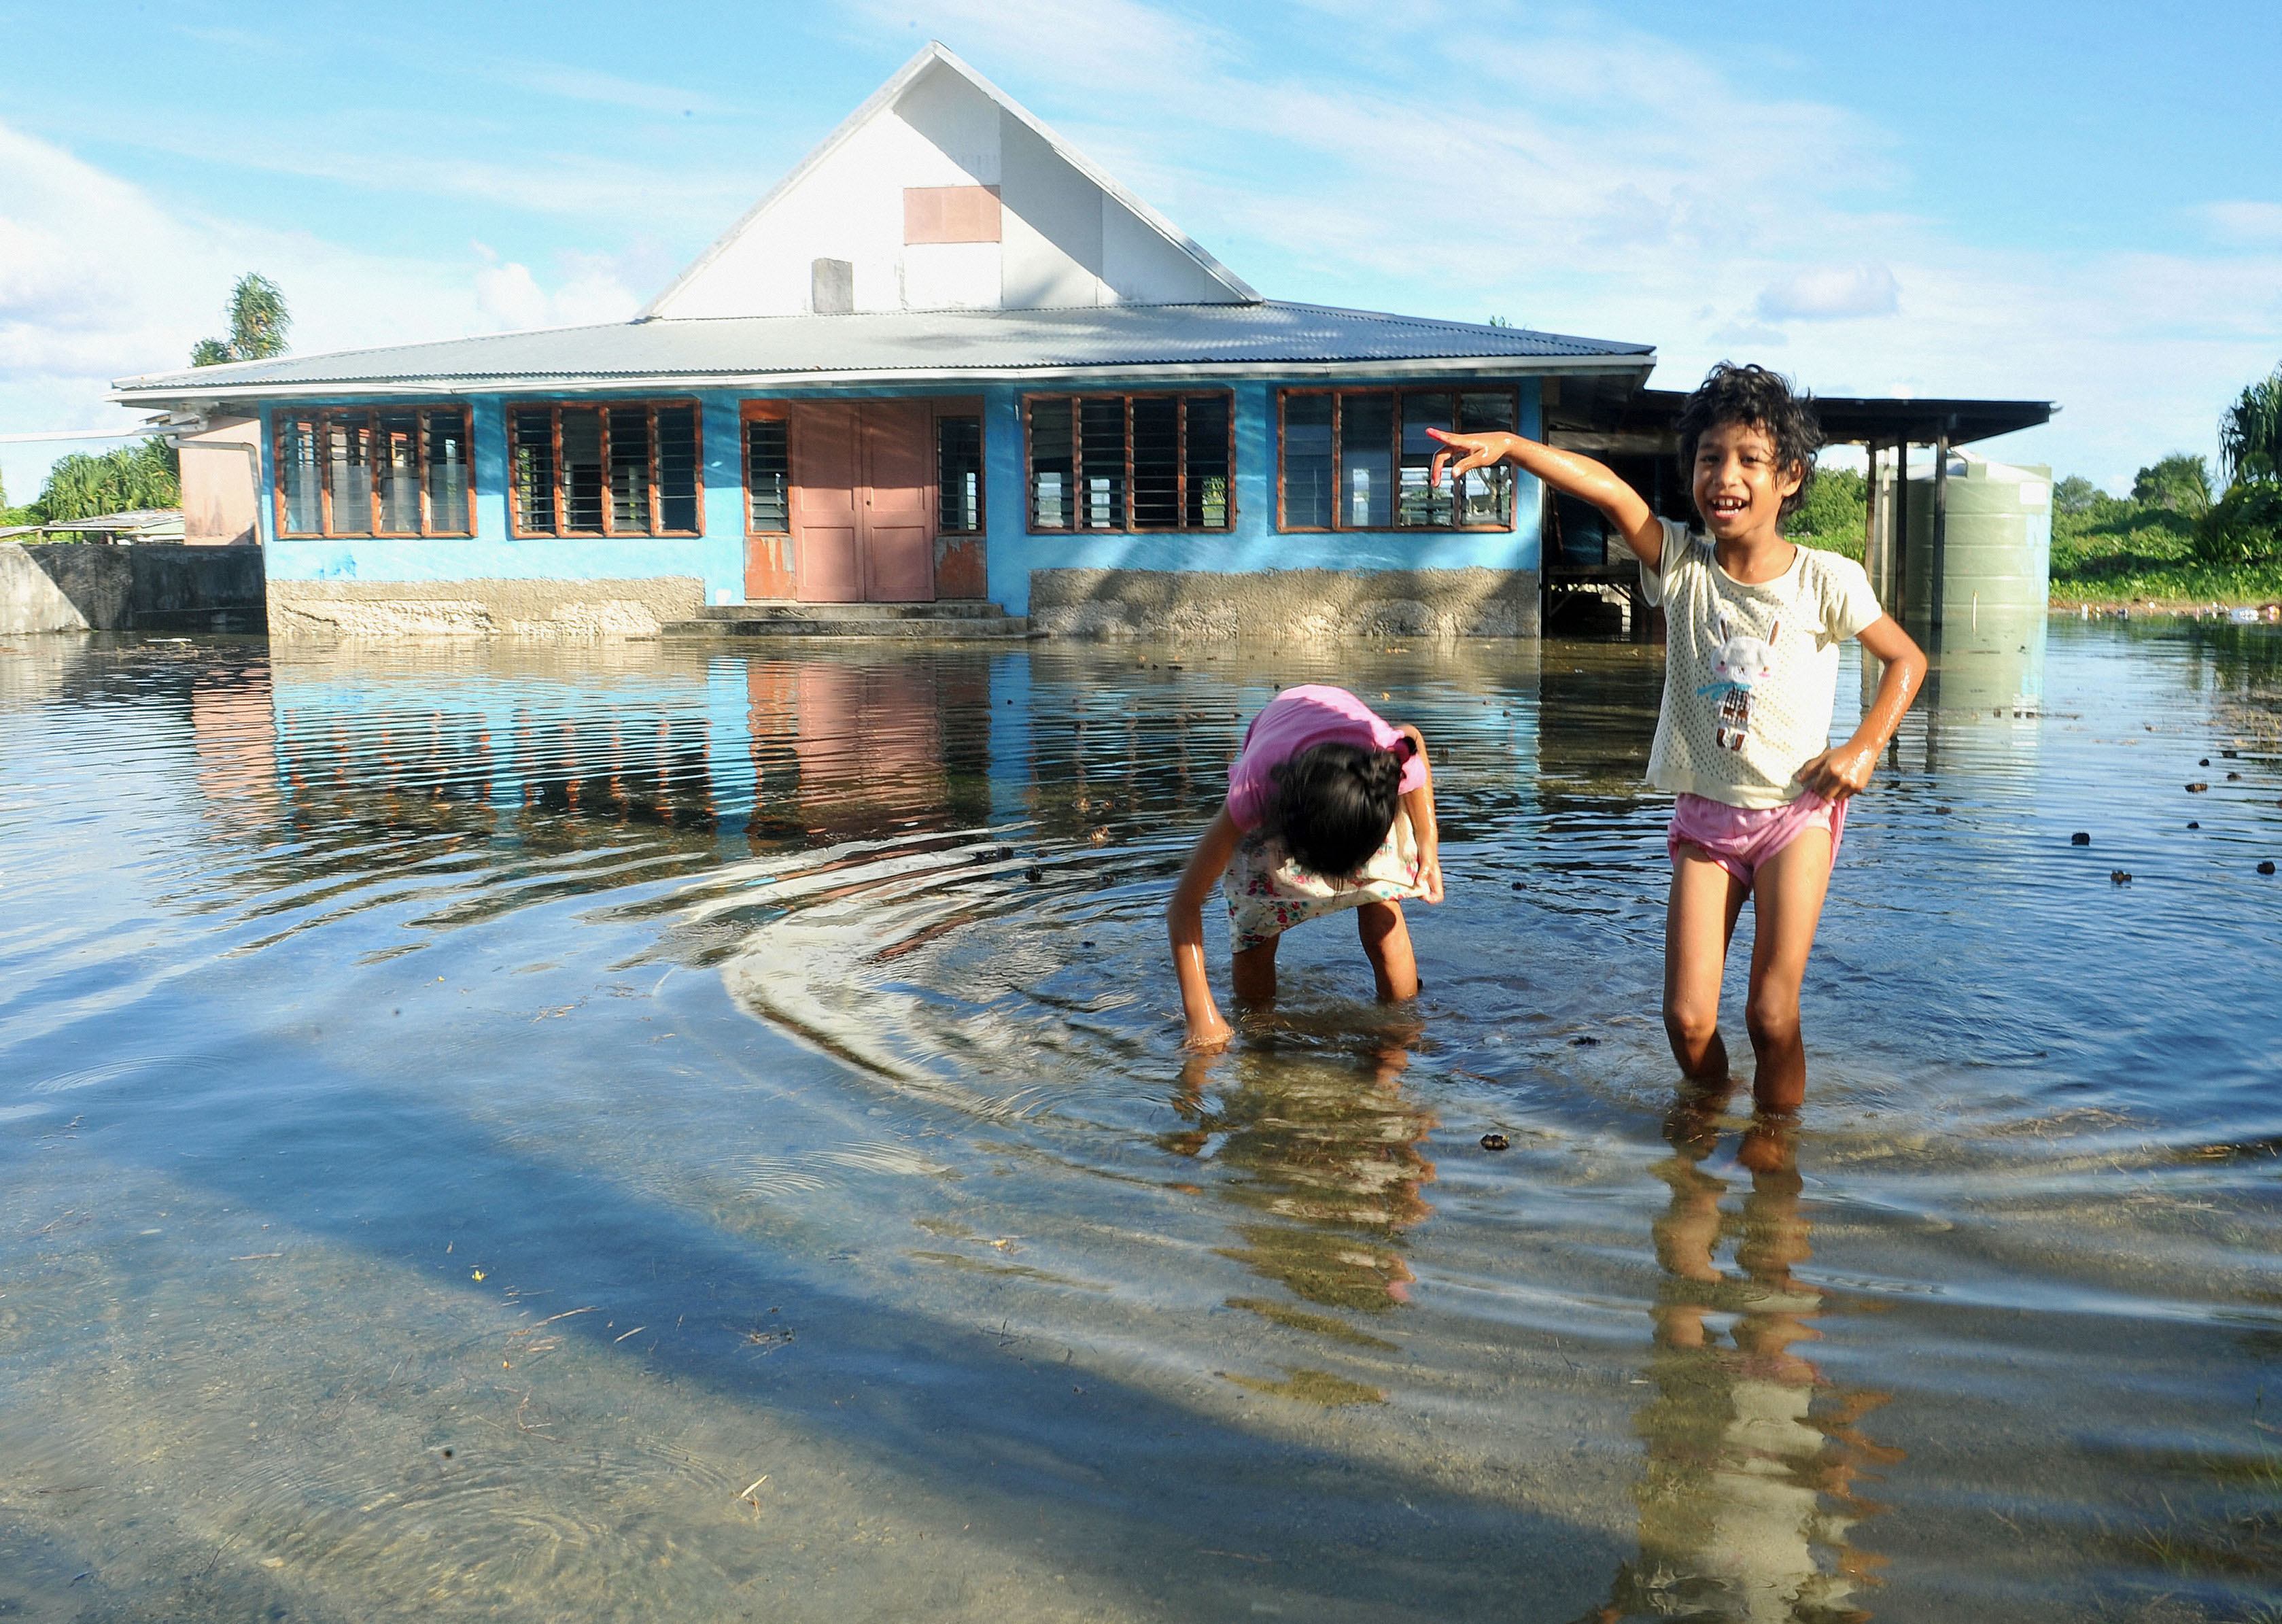 FUNAFUTI, Tuvalu - Children play at a plaza flooded with seawater in Funafuti, the capital of Tuvalu, on Jan. 30, 2014. Photo credit: Kyodo / AP Images